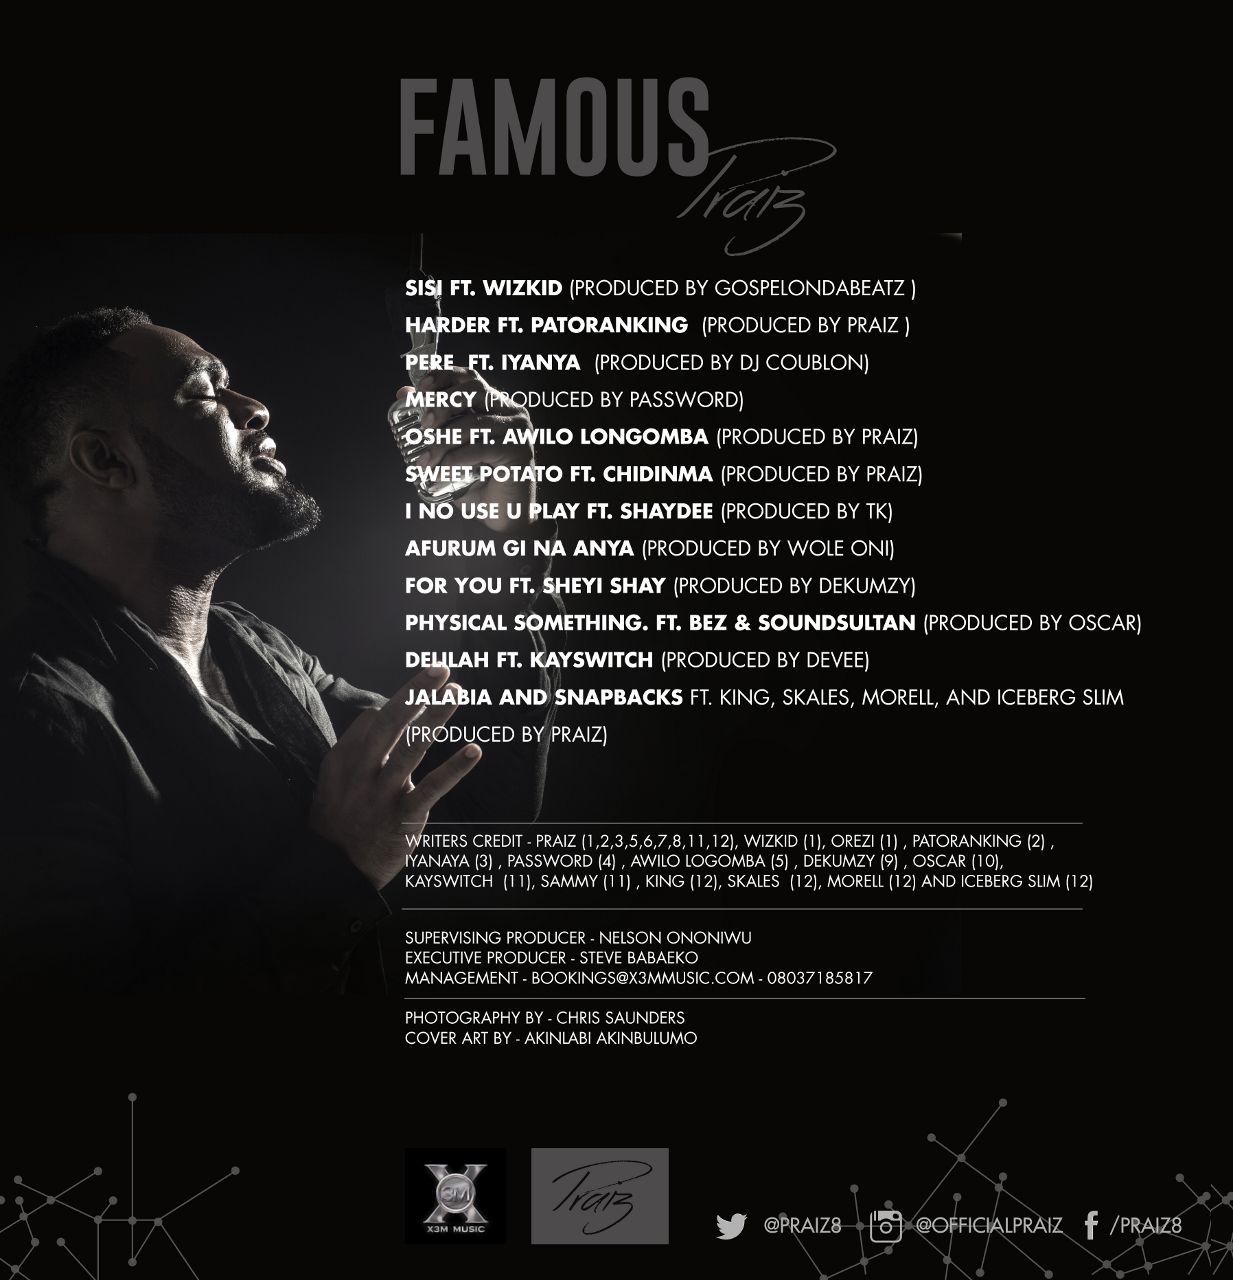 Praiz - Famous (Album Art)-Back